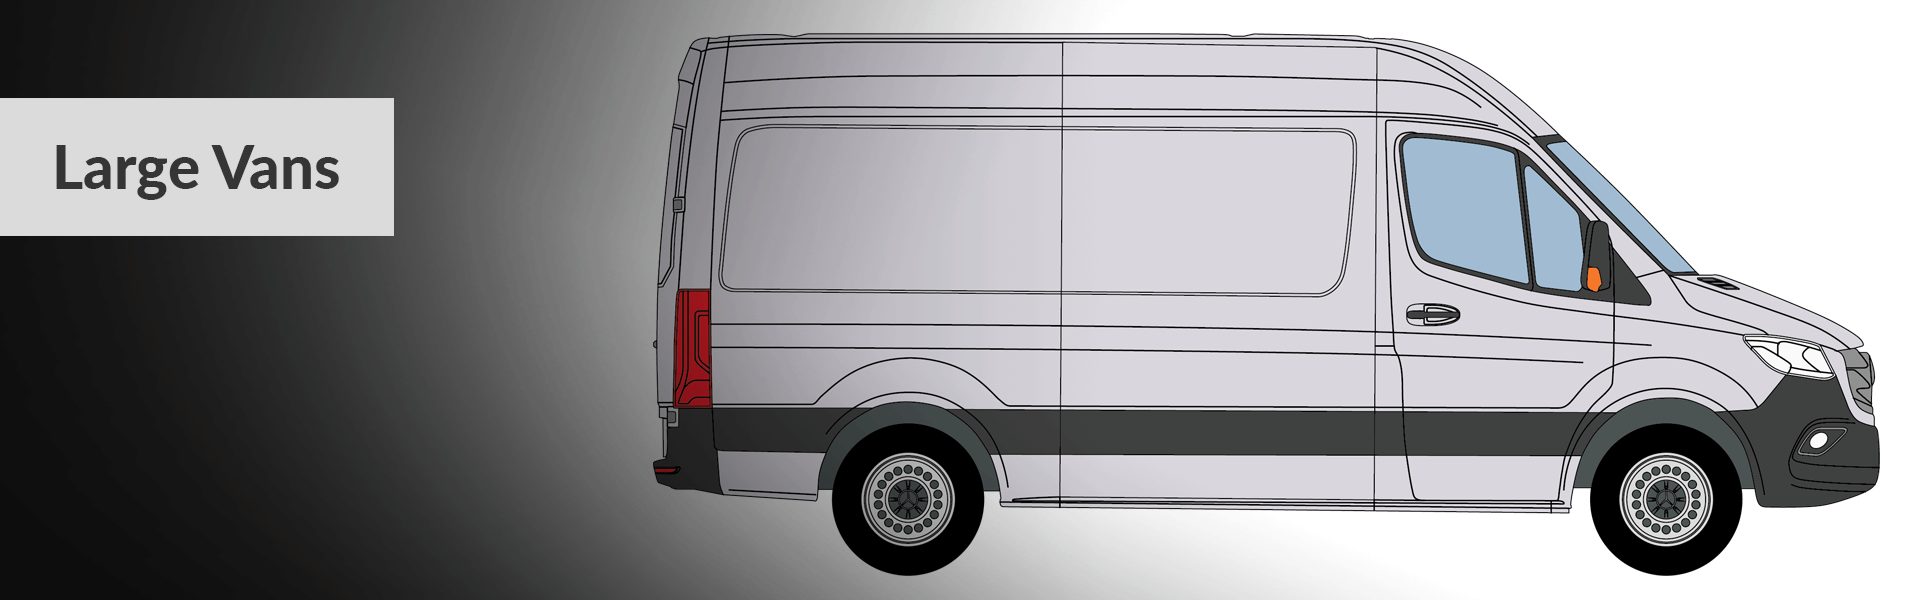 Large Van Desktop